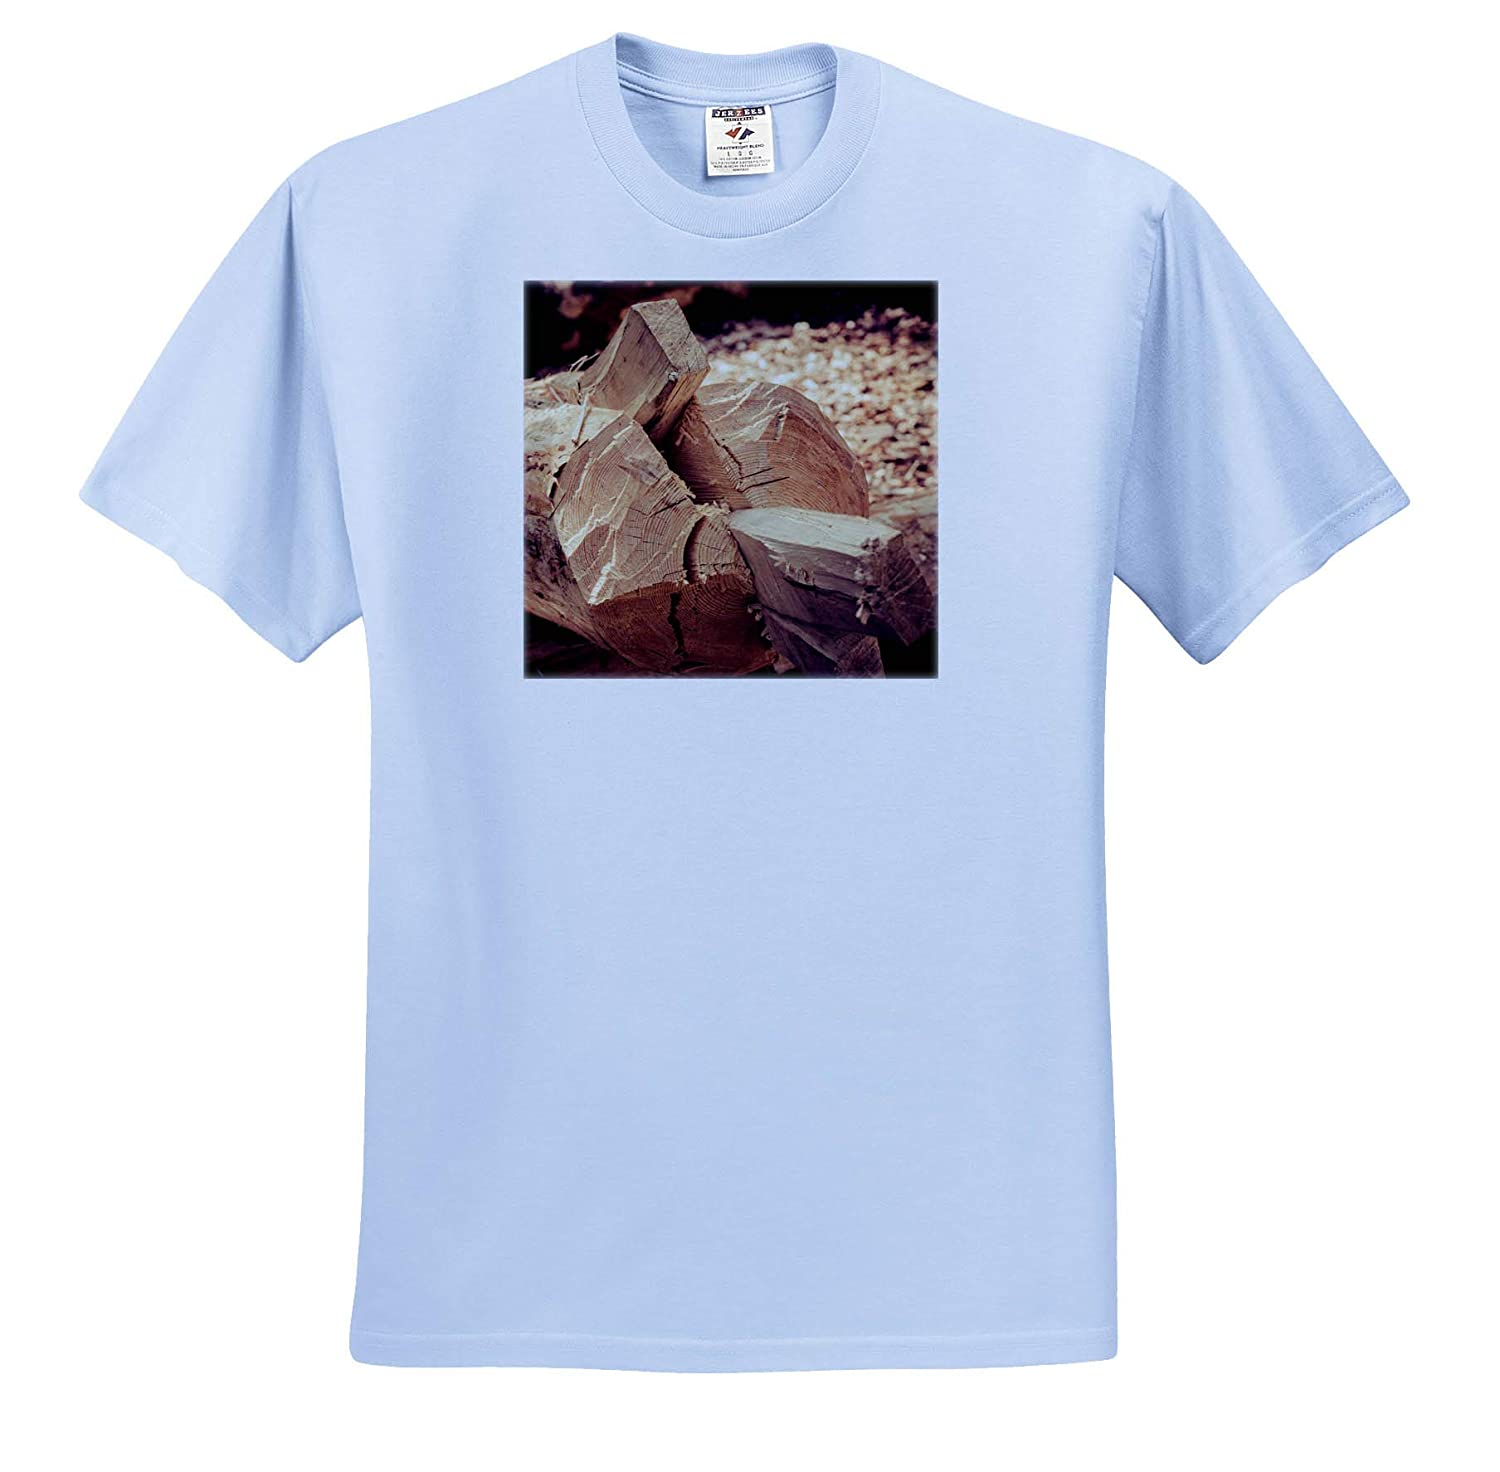 Objects Wood T-Shirts Stylized Photo 3dRose Alexis Photography Ancient Technology to Split a Wooden Log